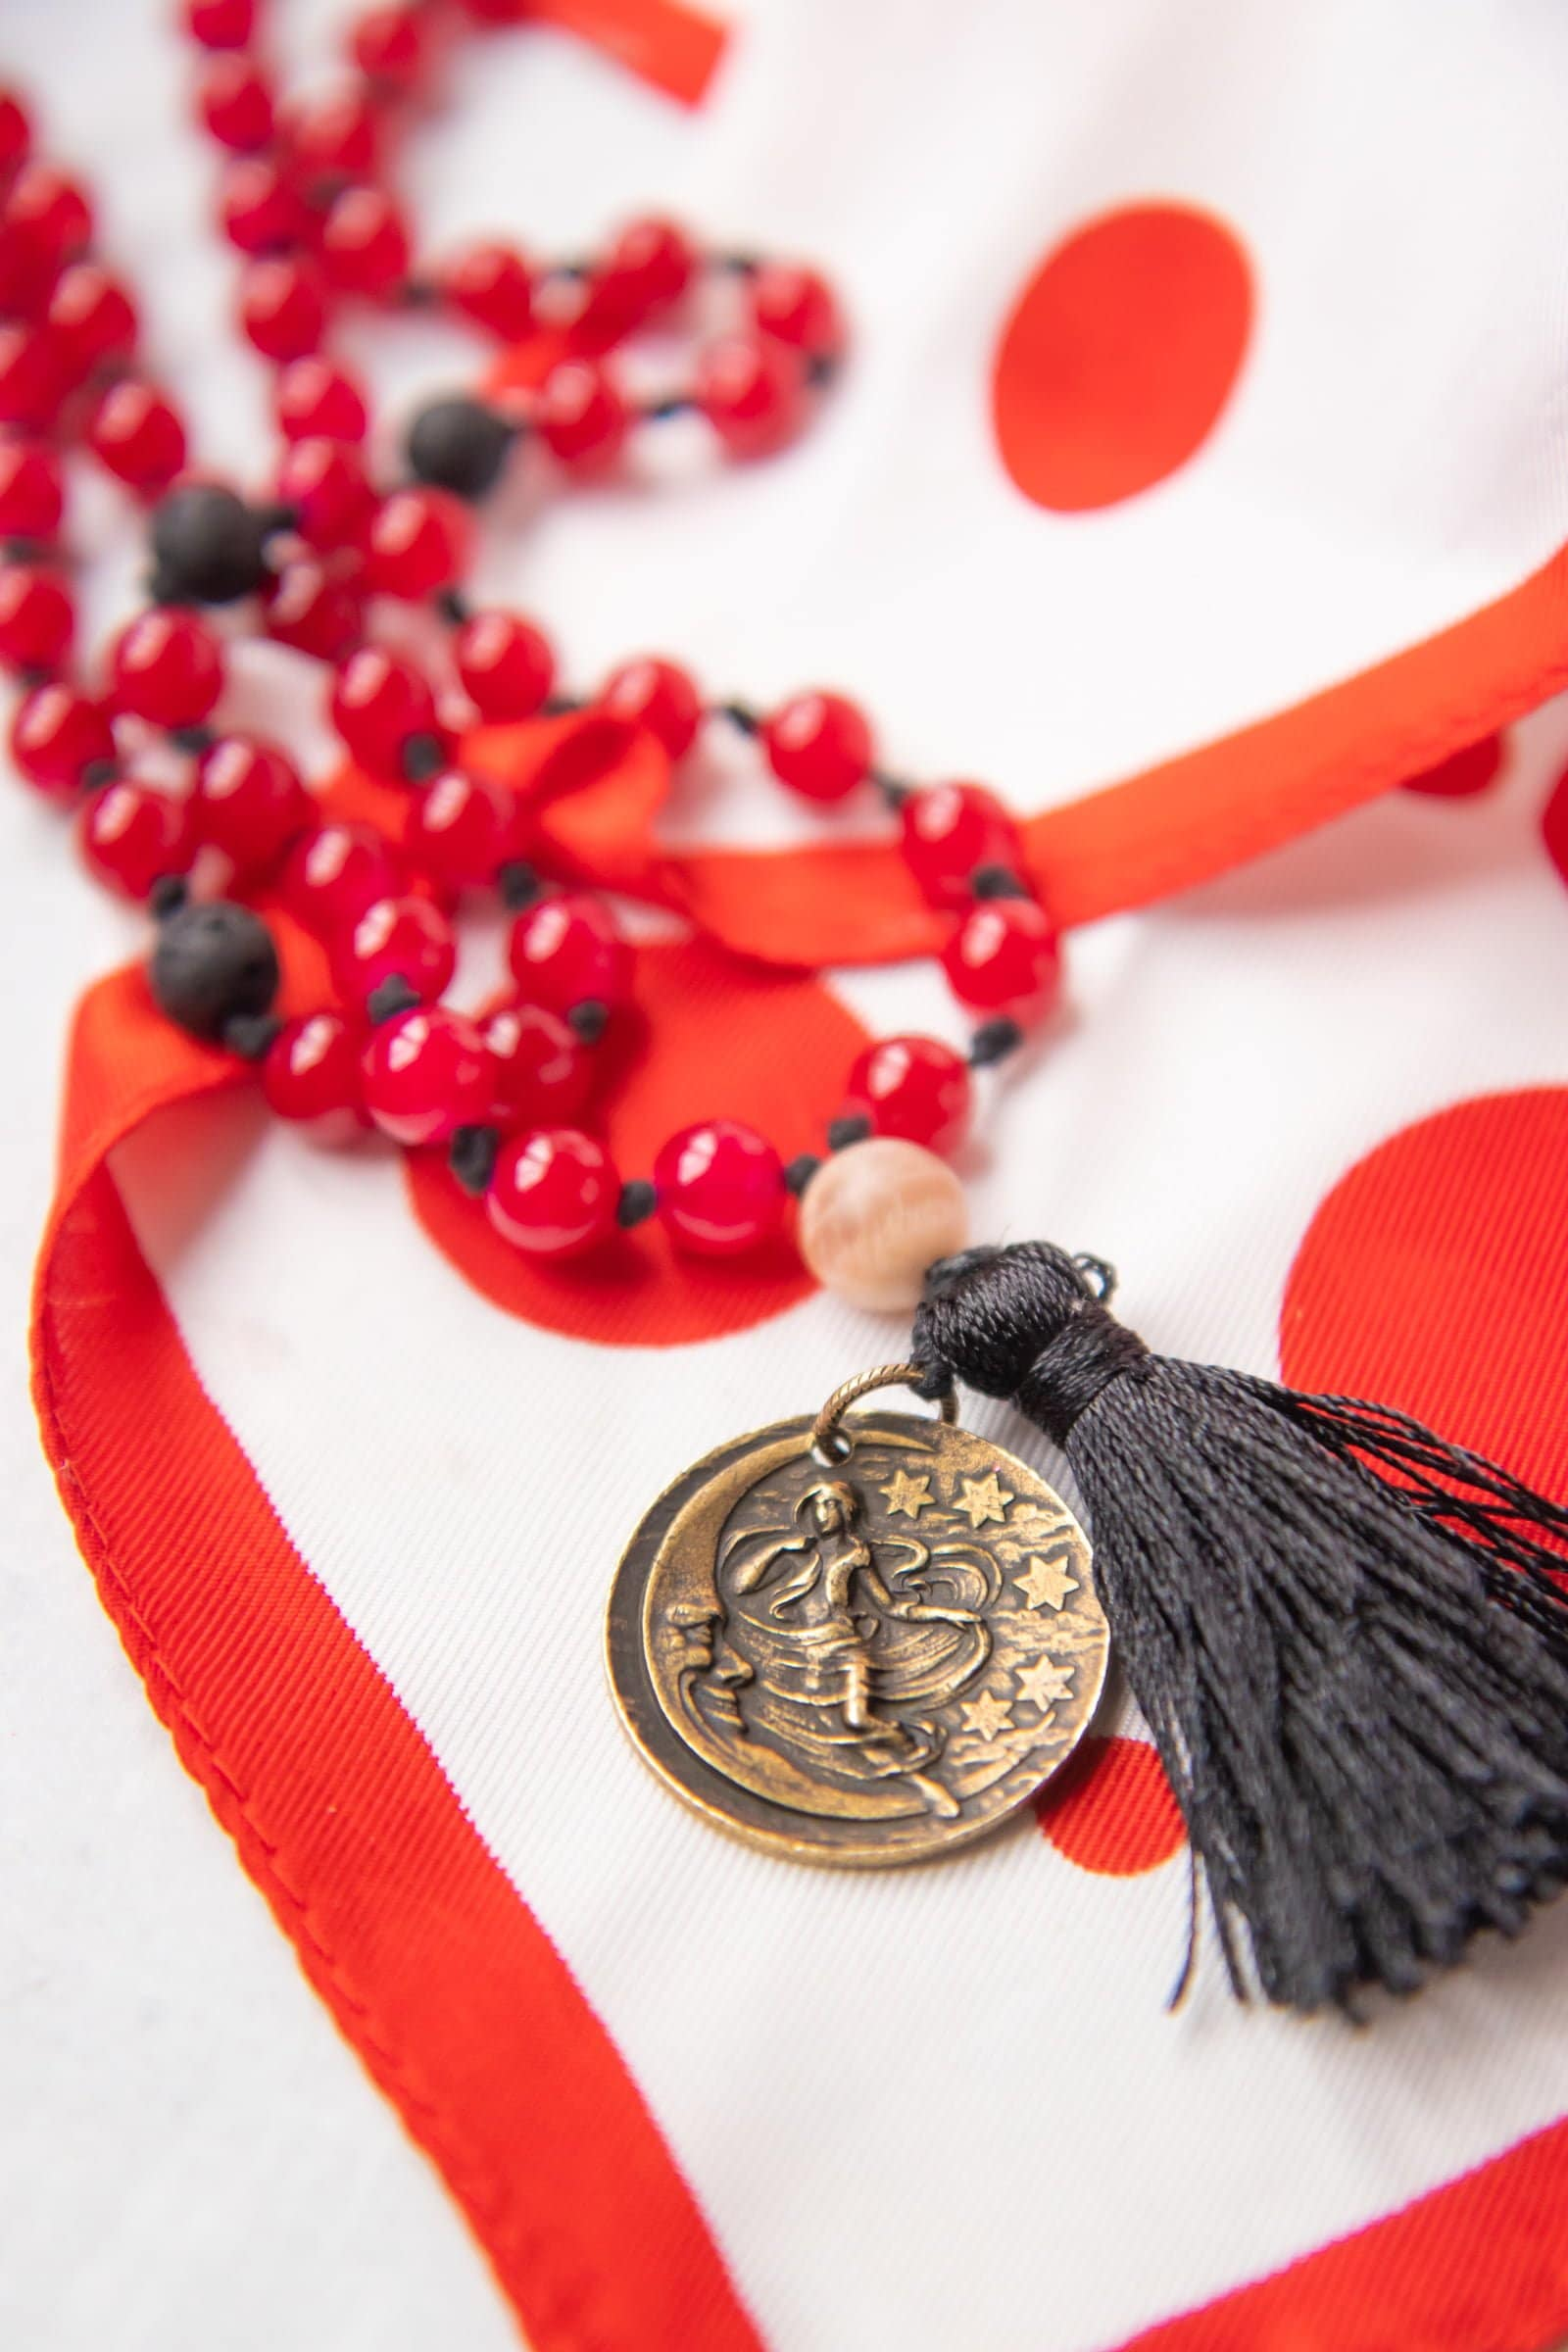 Close up of a red beaded mala with a moonstone, on top of a red and white scarf.